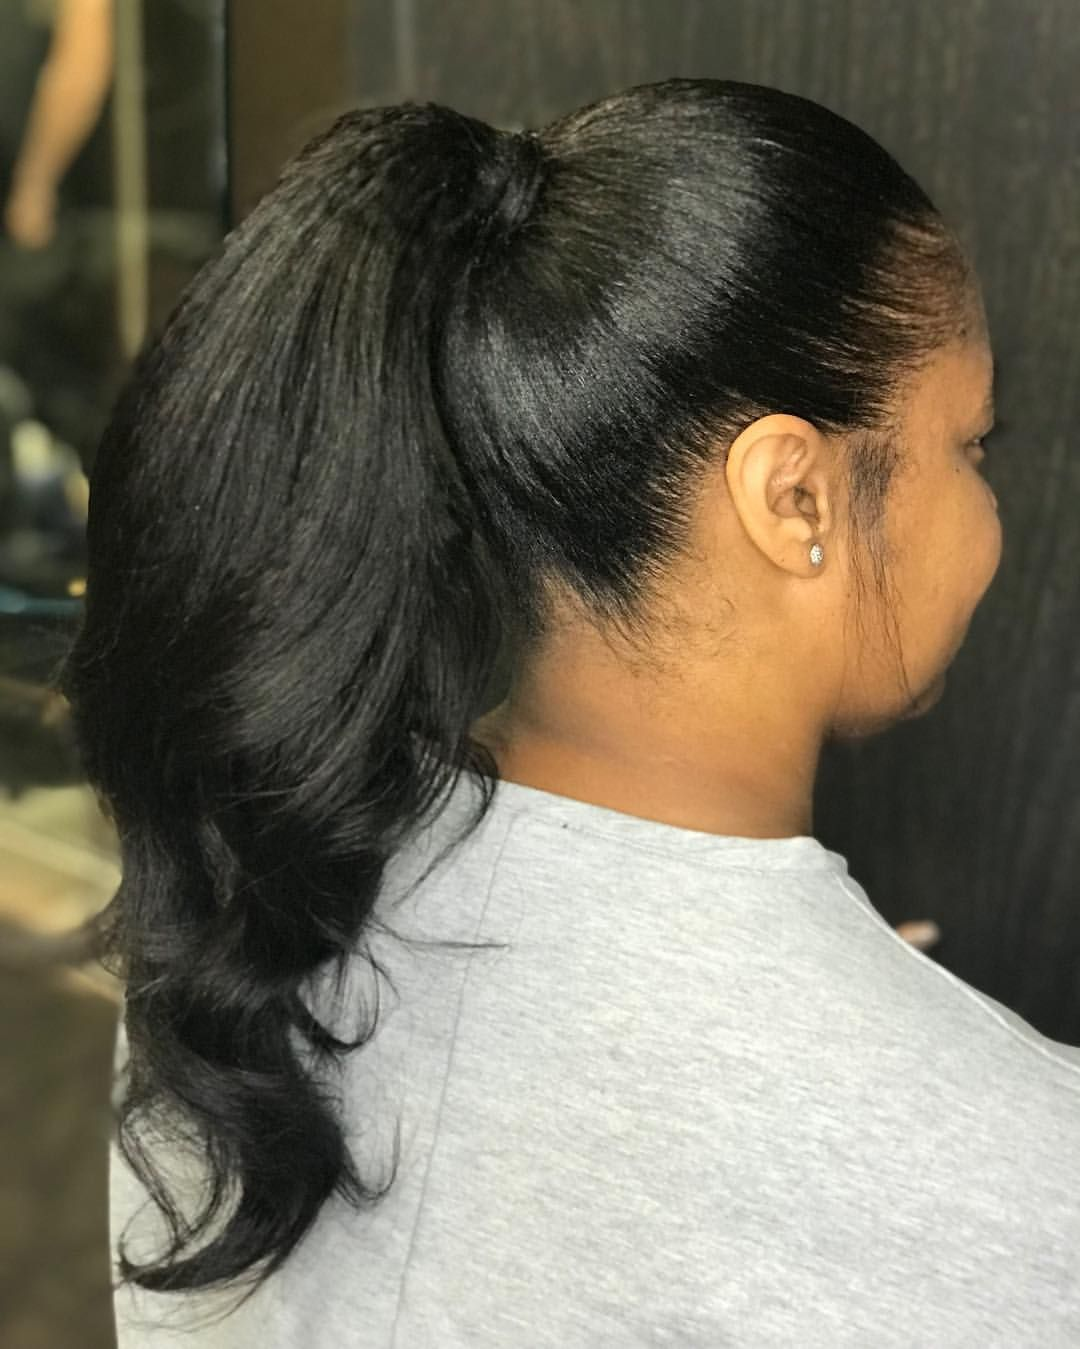 I Love A Sleek Ponytail Using My Relaxed Straight Texture The Blend And The Fullness Of The Hair With Natural Hair Styles Natural Hair Ponytail Sleek Ponytail